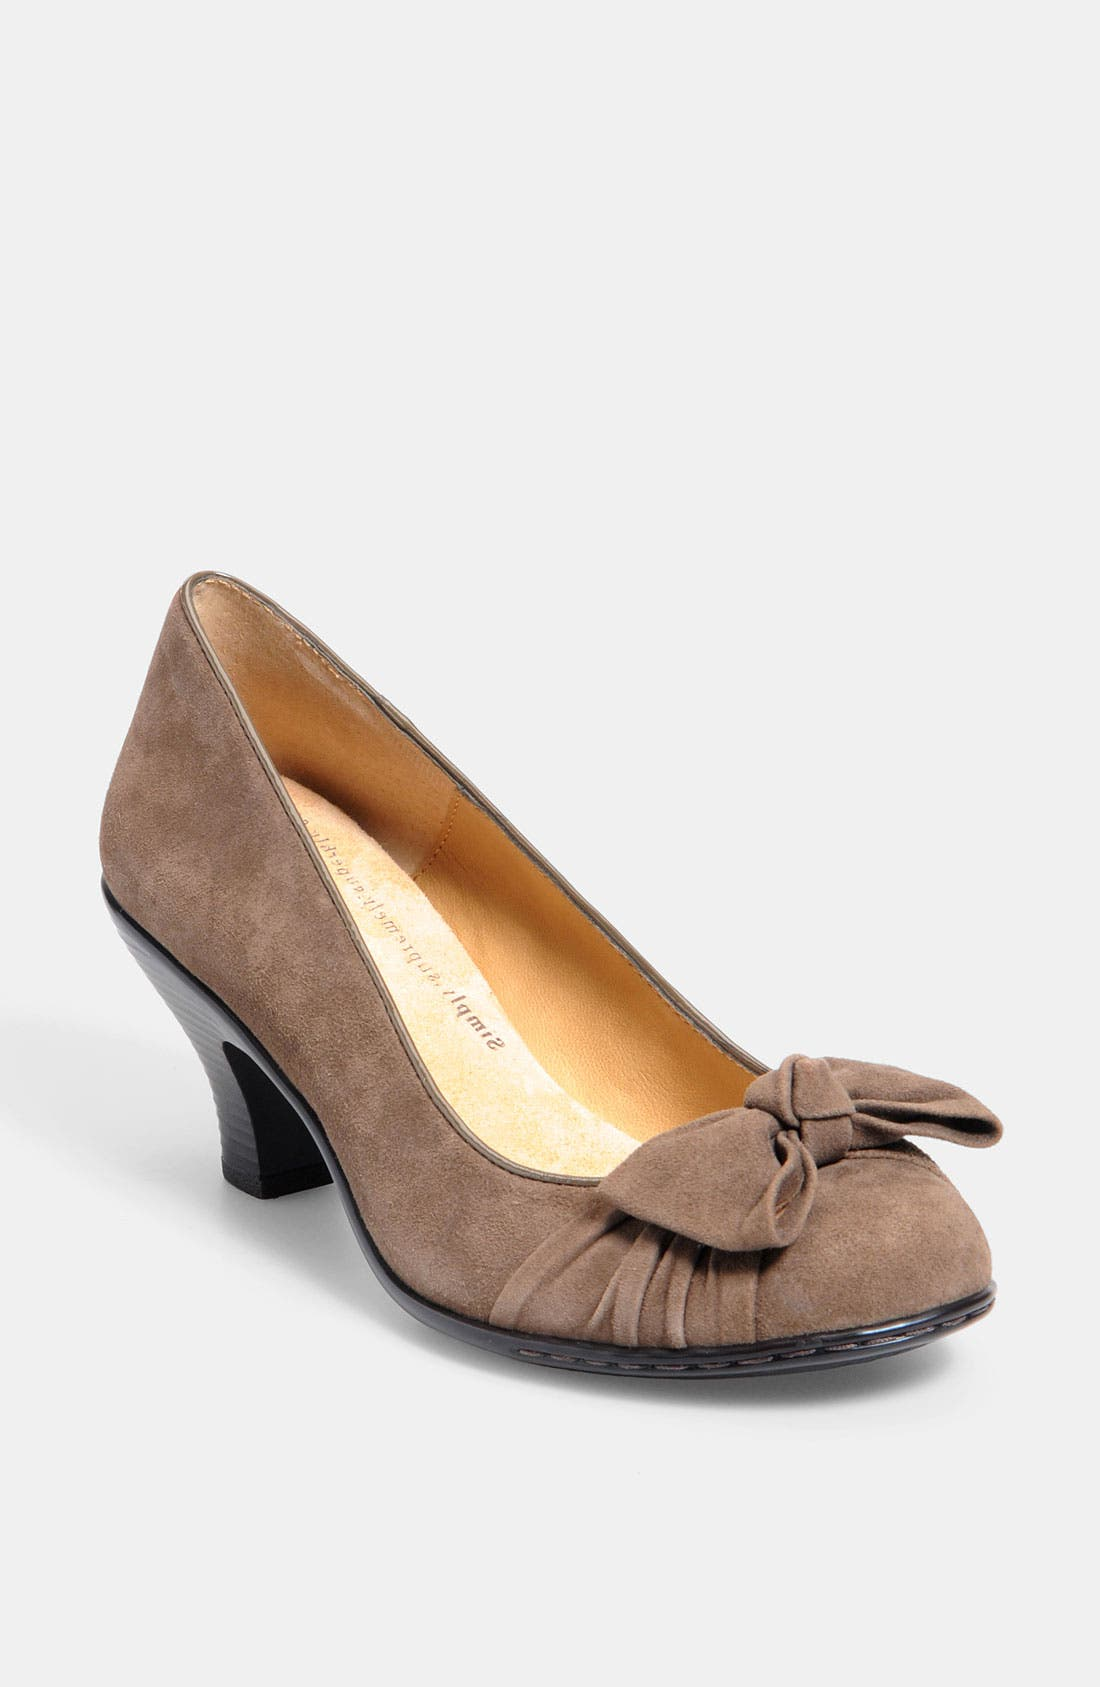 Main Image - Softspots 'Samantha' Pump